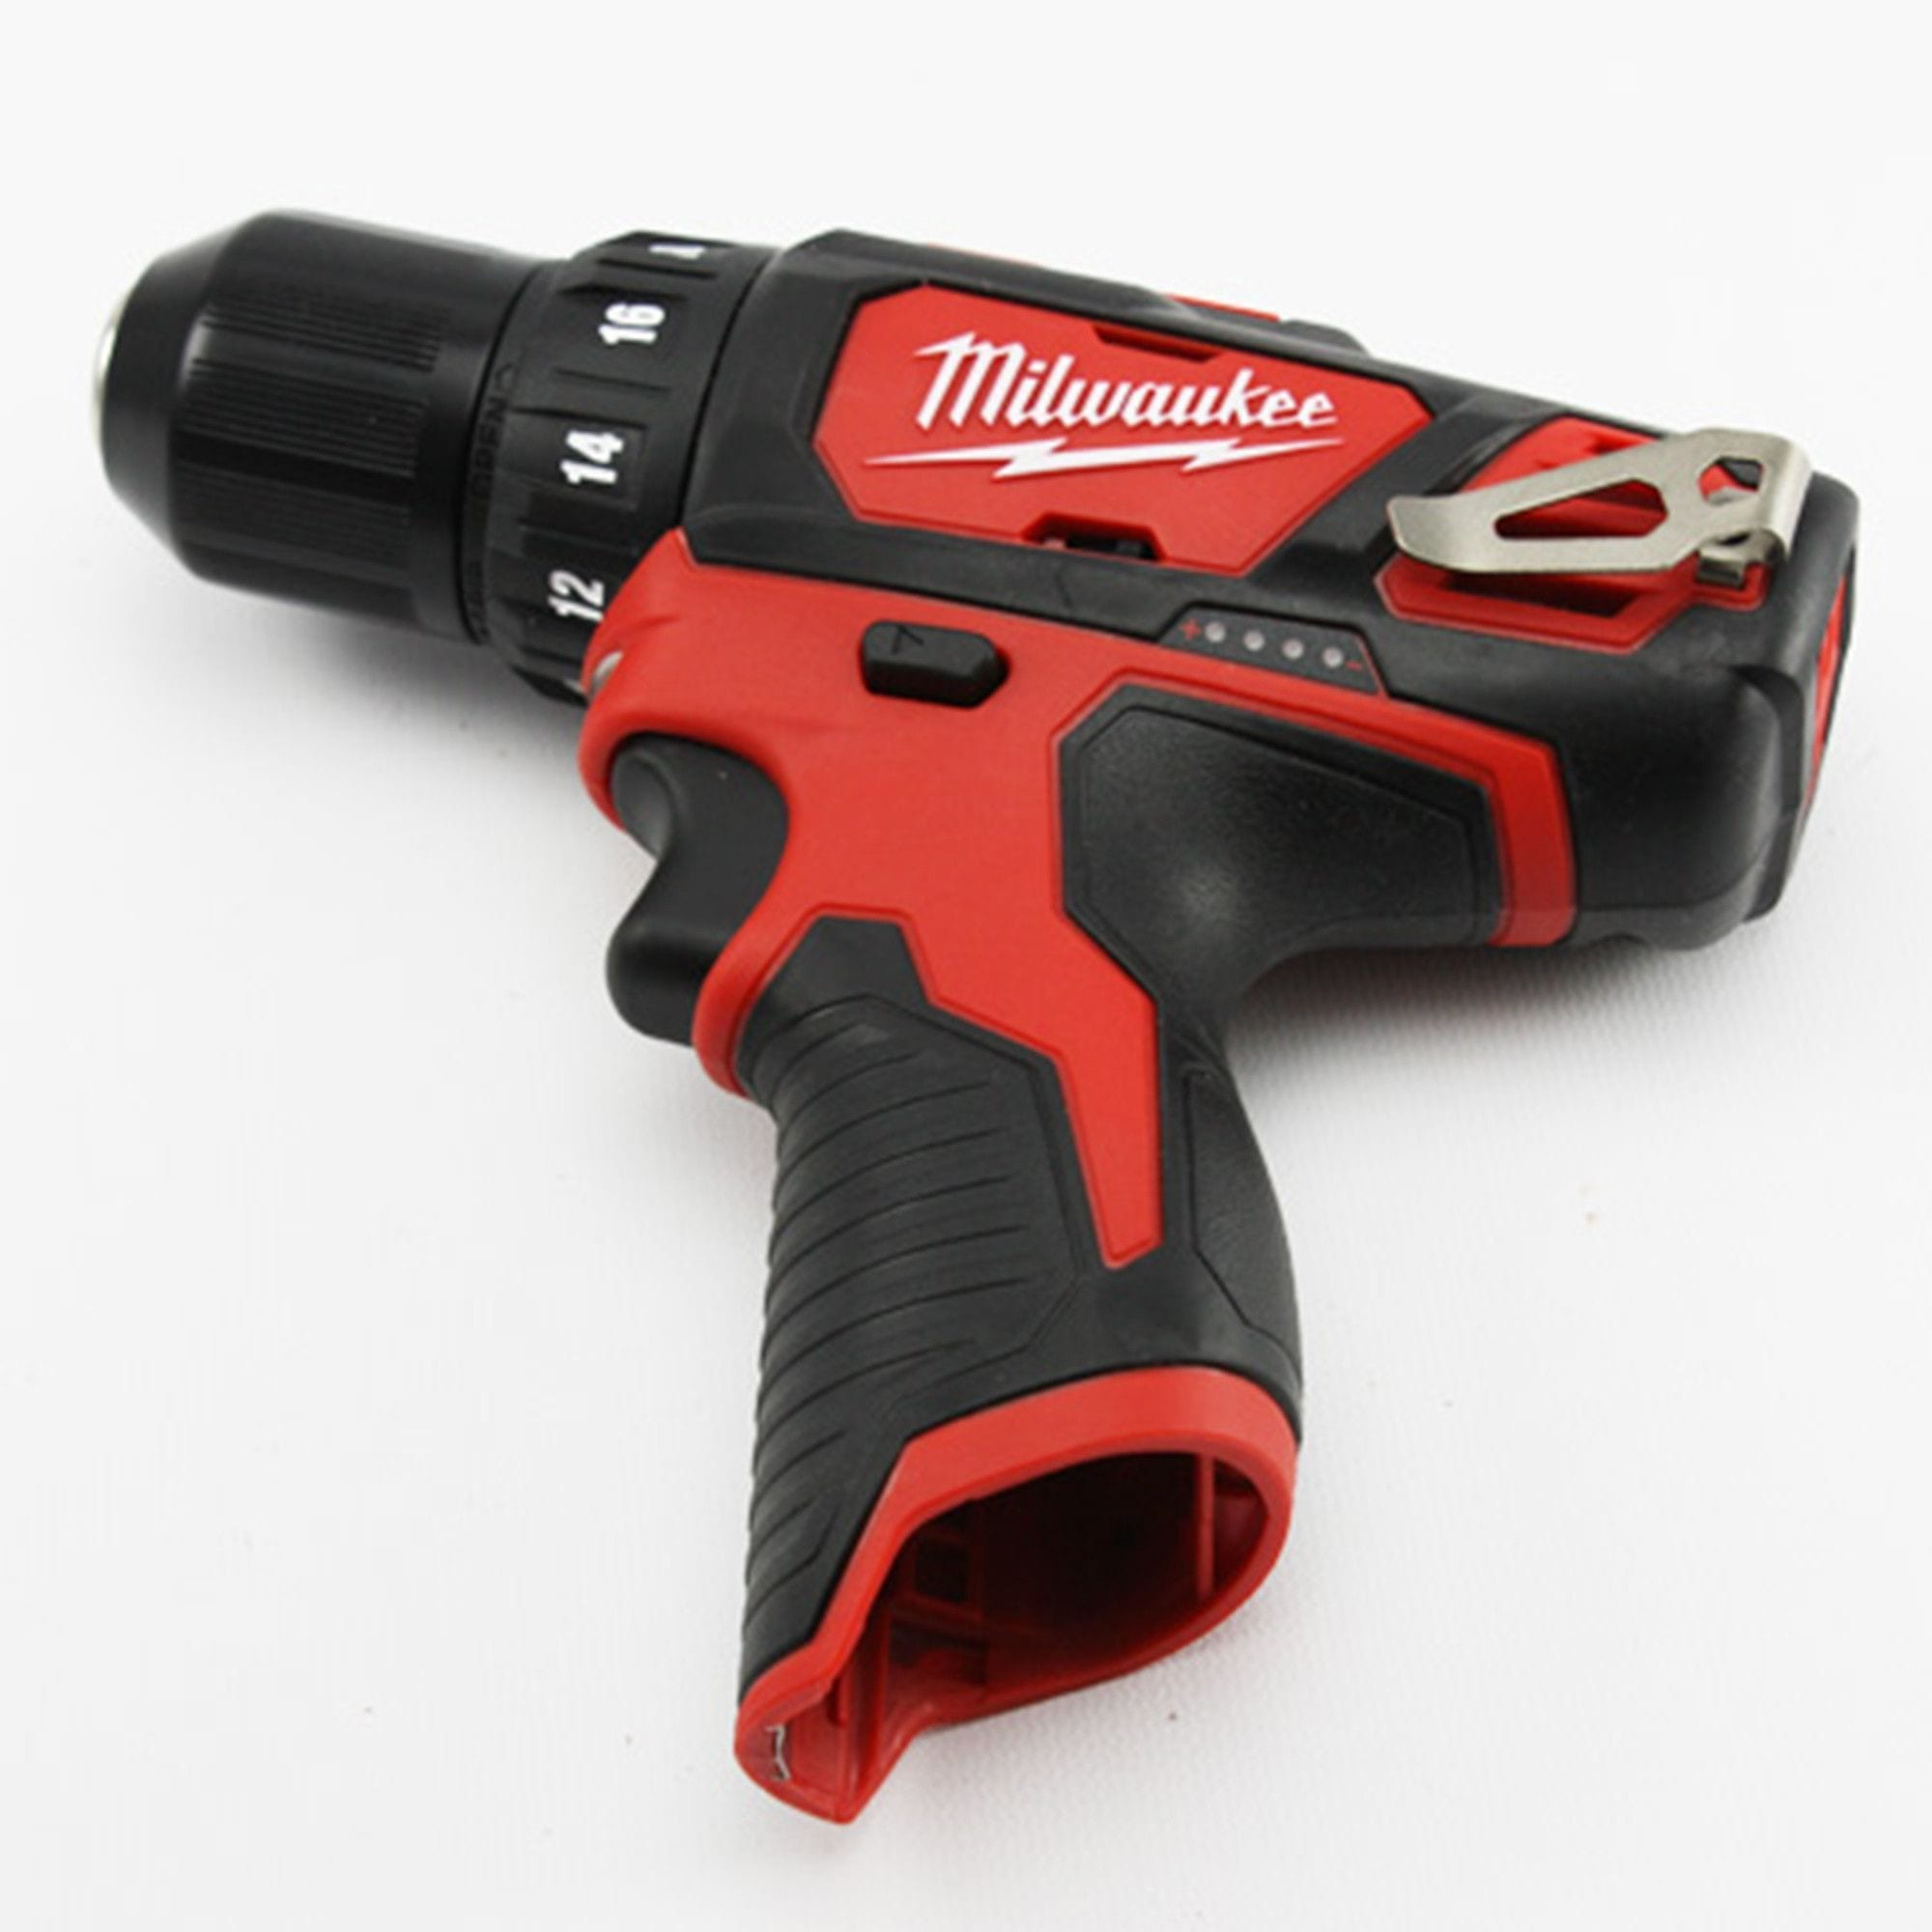 Milwaukee 2407-20 M12 3-8 Drill Driver – Bare